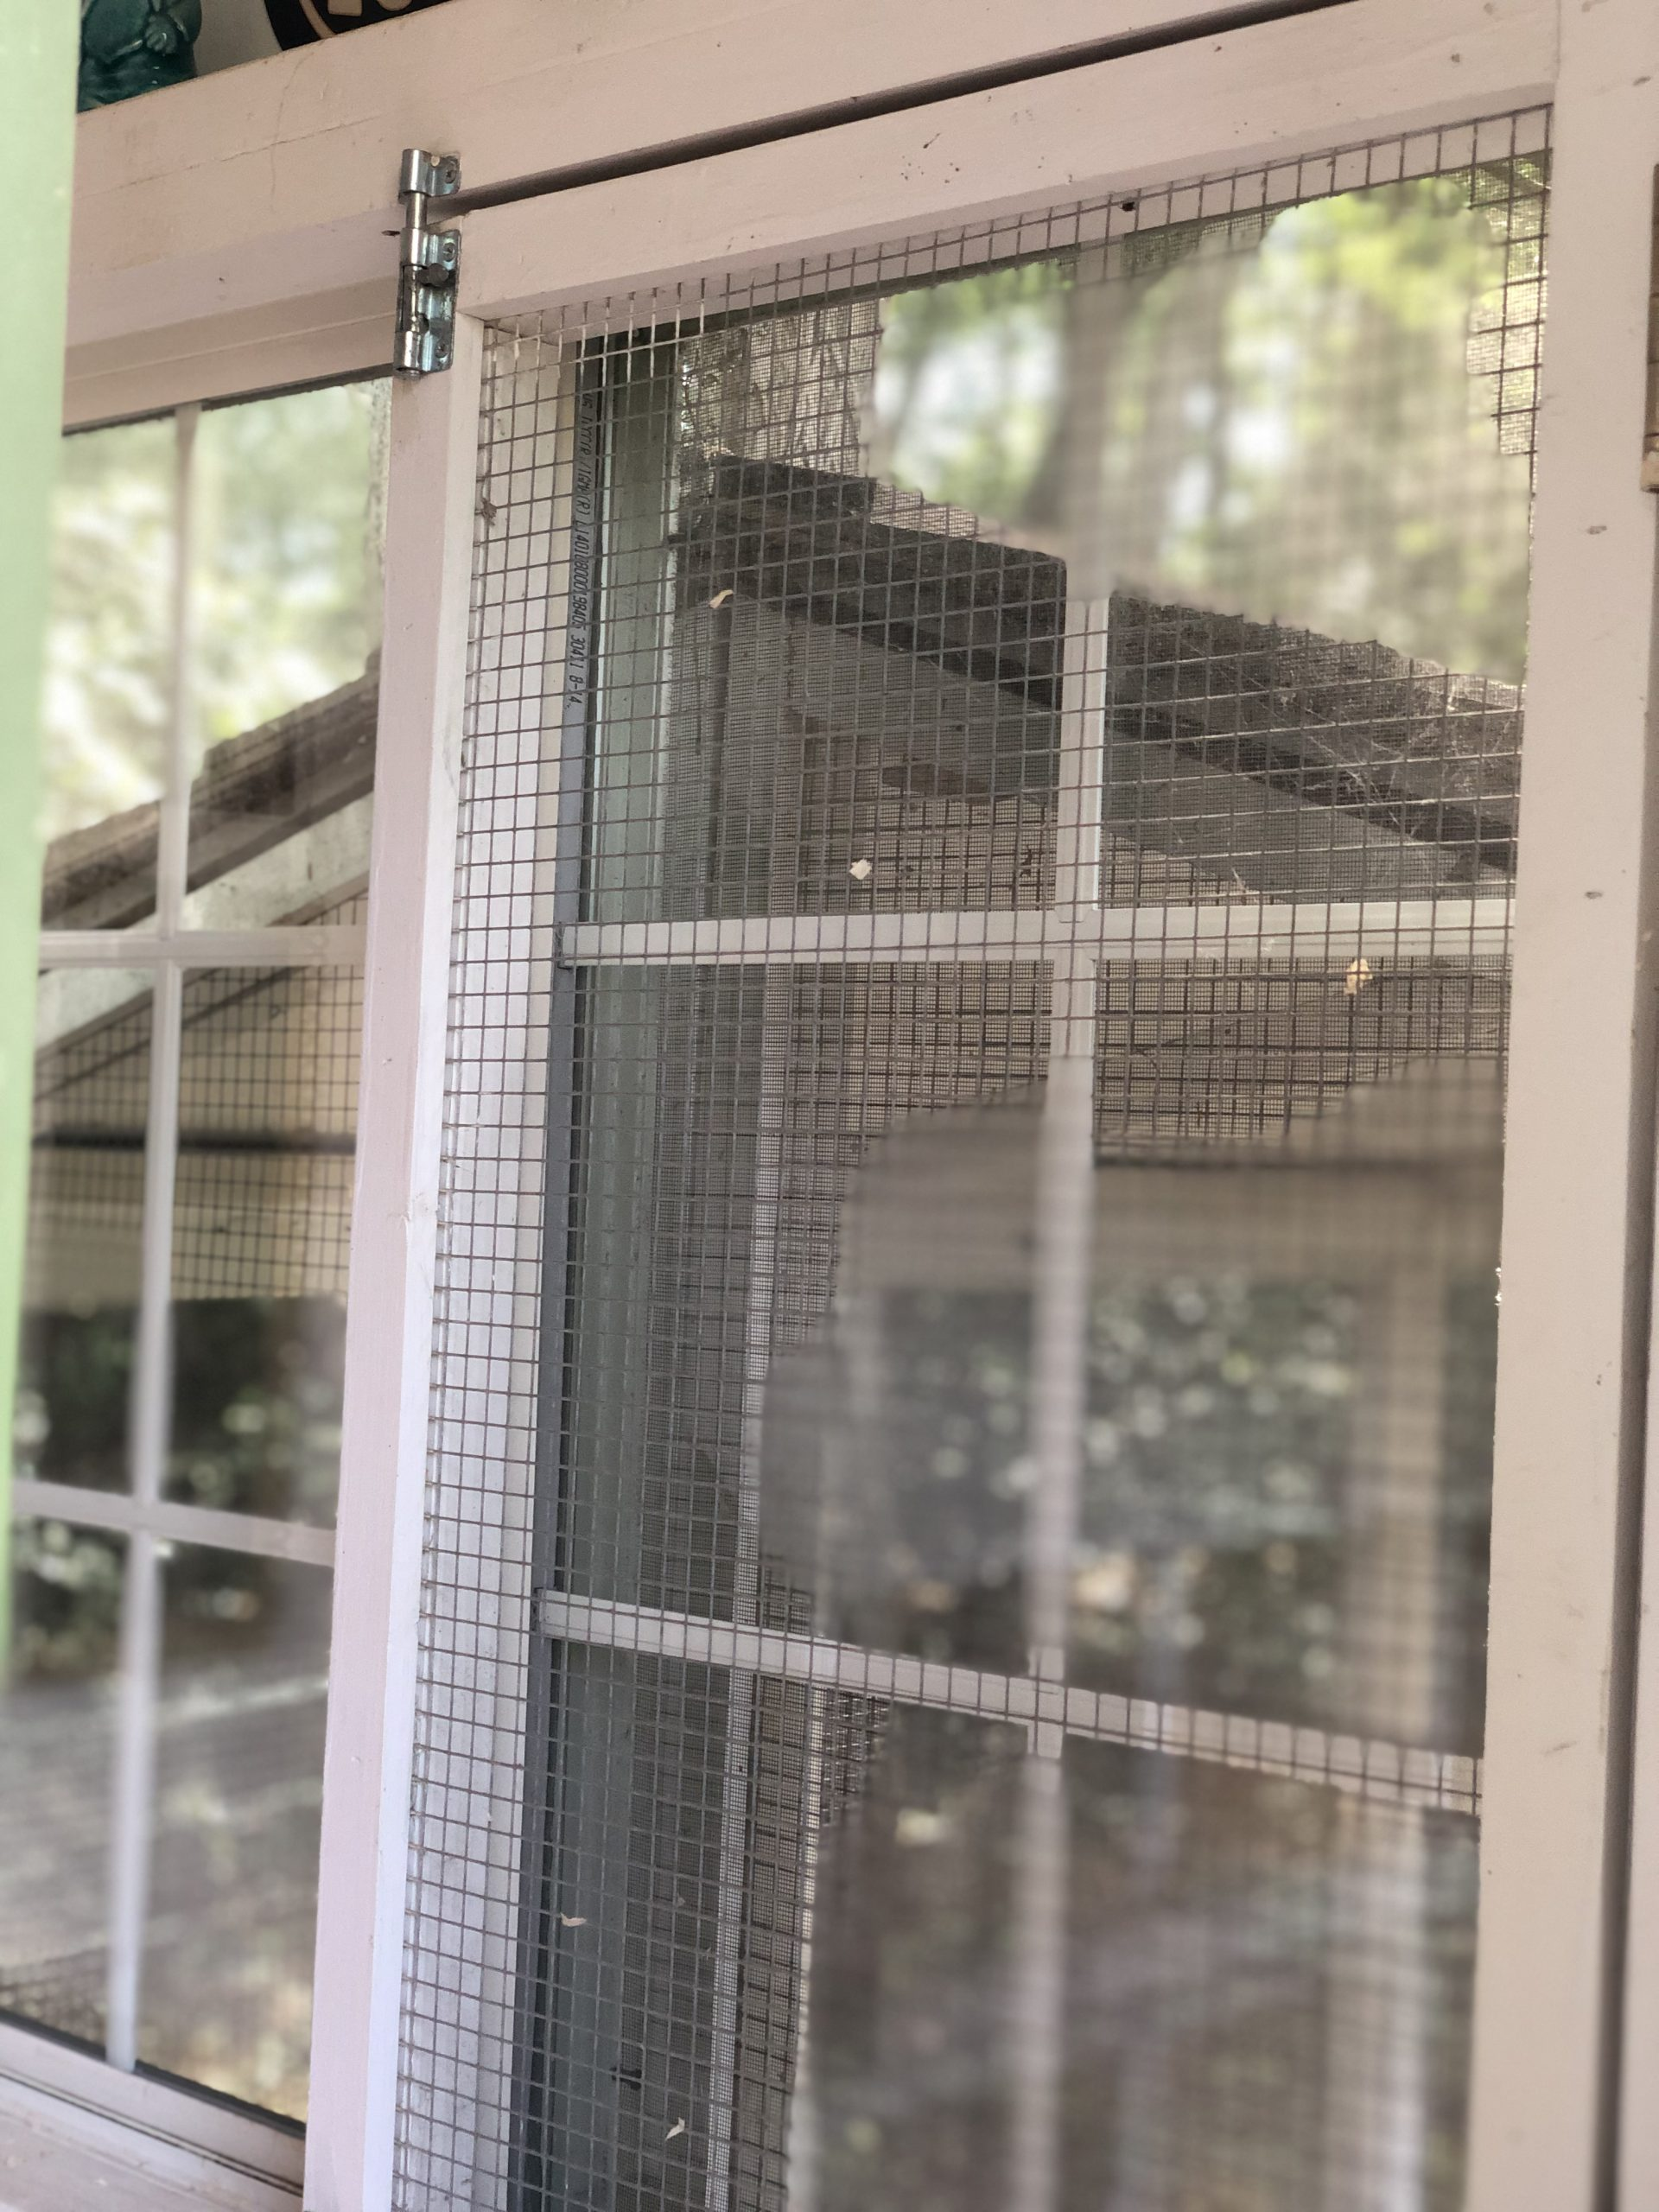 hardware cloth covers the chicken coop window to prevent backyard chicken predators